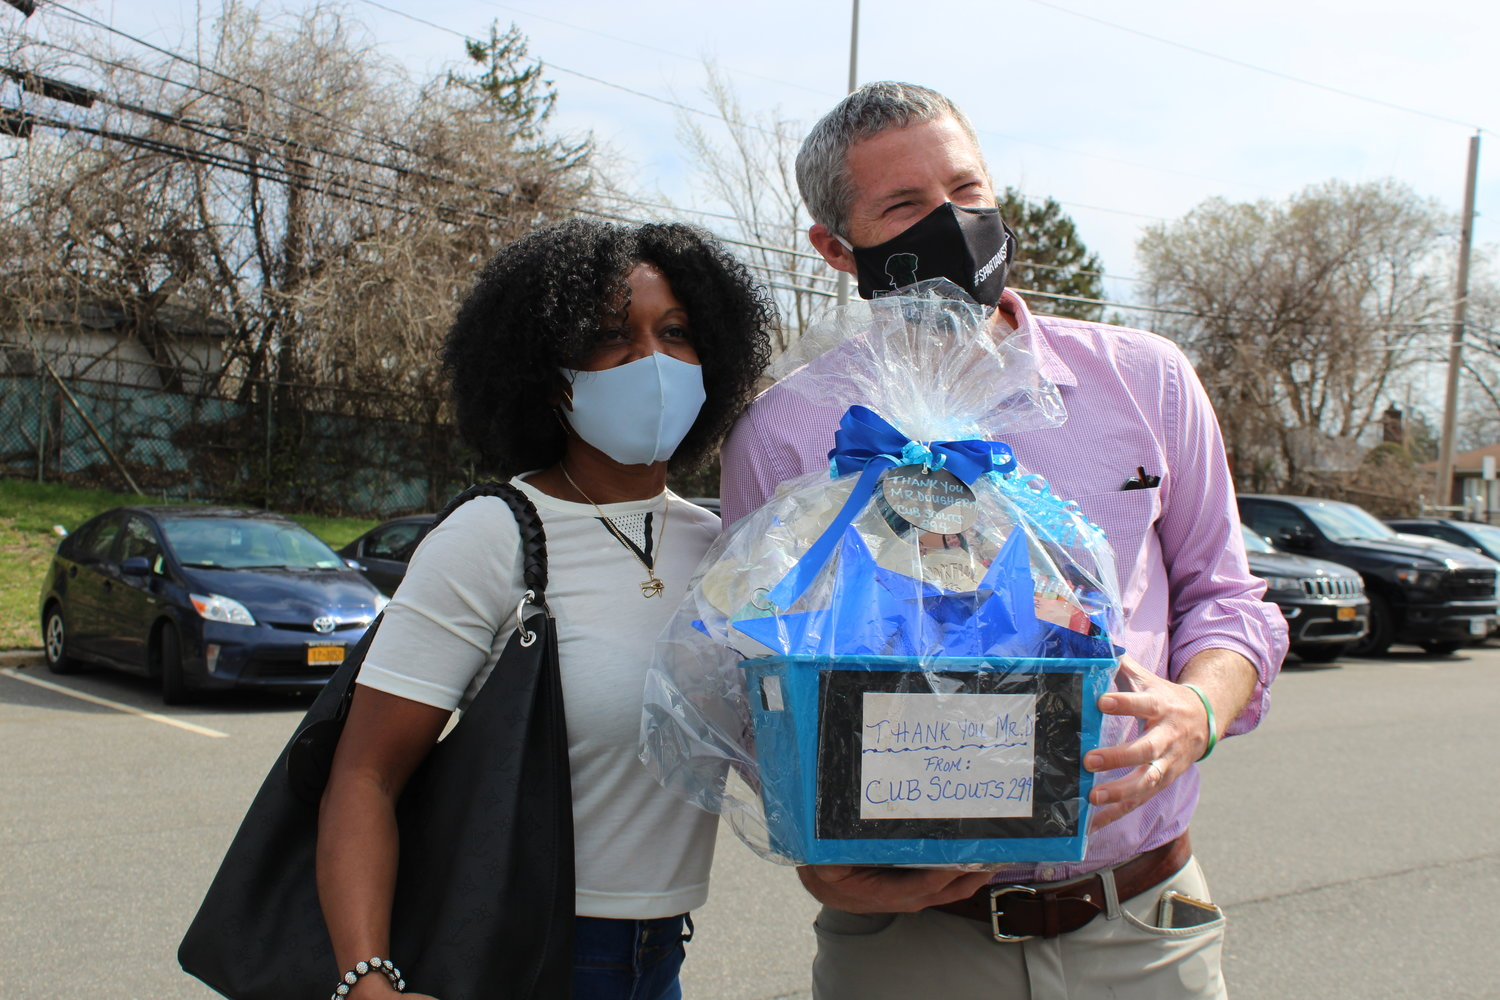 Natasha Warburton presented Elmont Memorial High School Principal Kevin Dougherty with a gift basket on behalf of Cub Scout Pack 294 for his efforts to help feed local families.